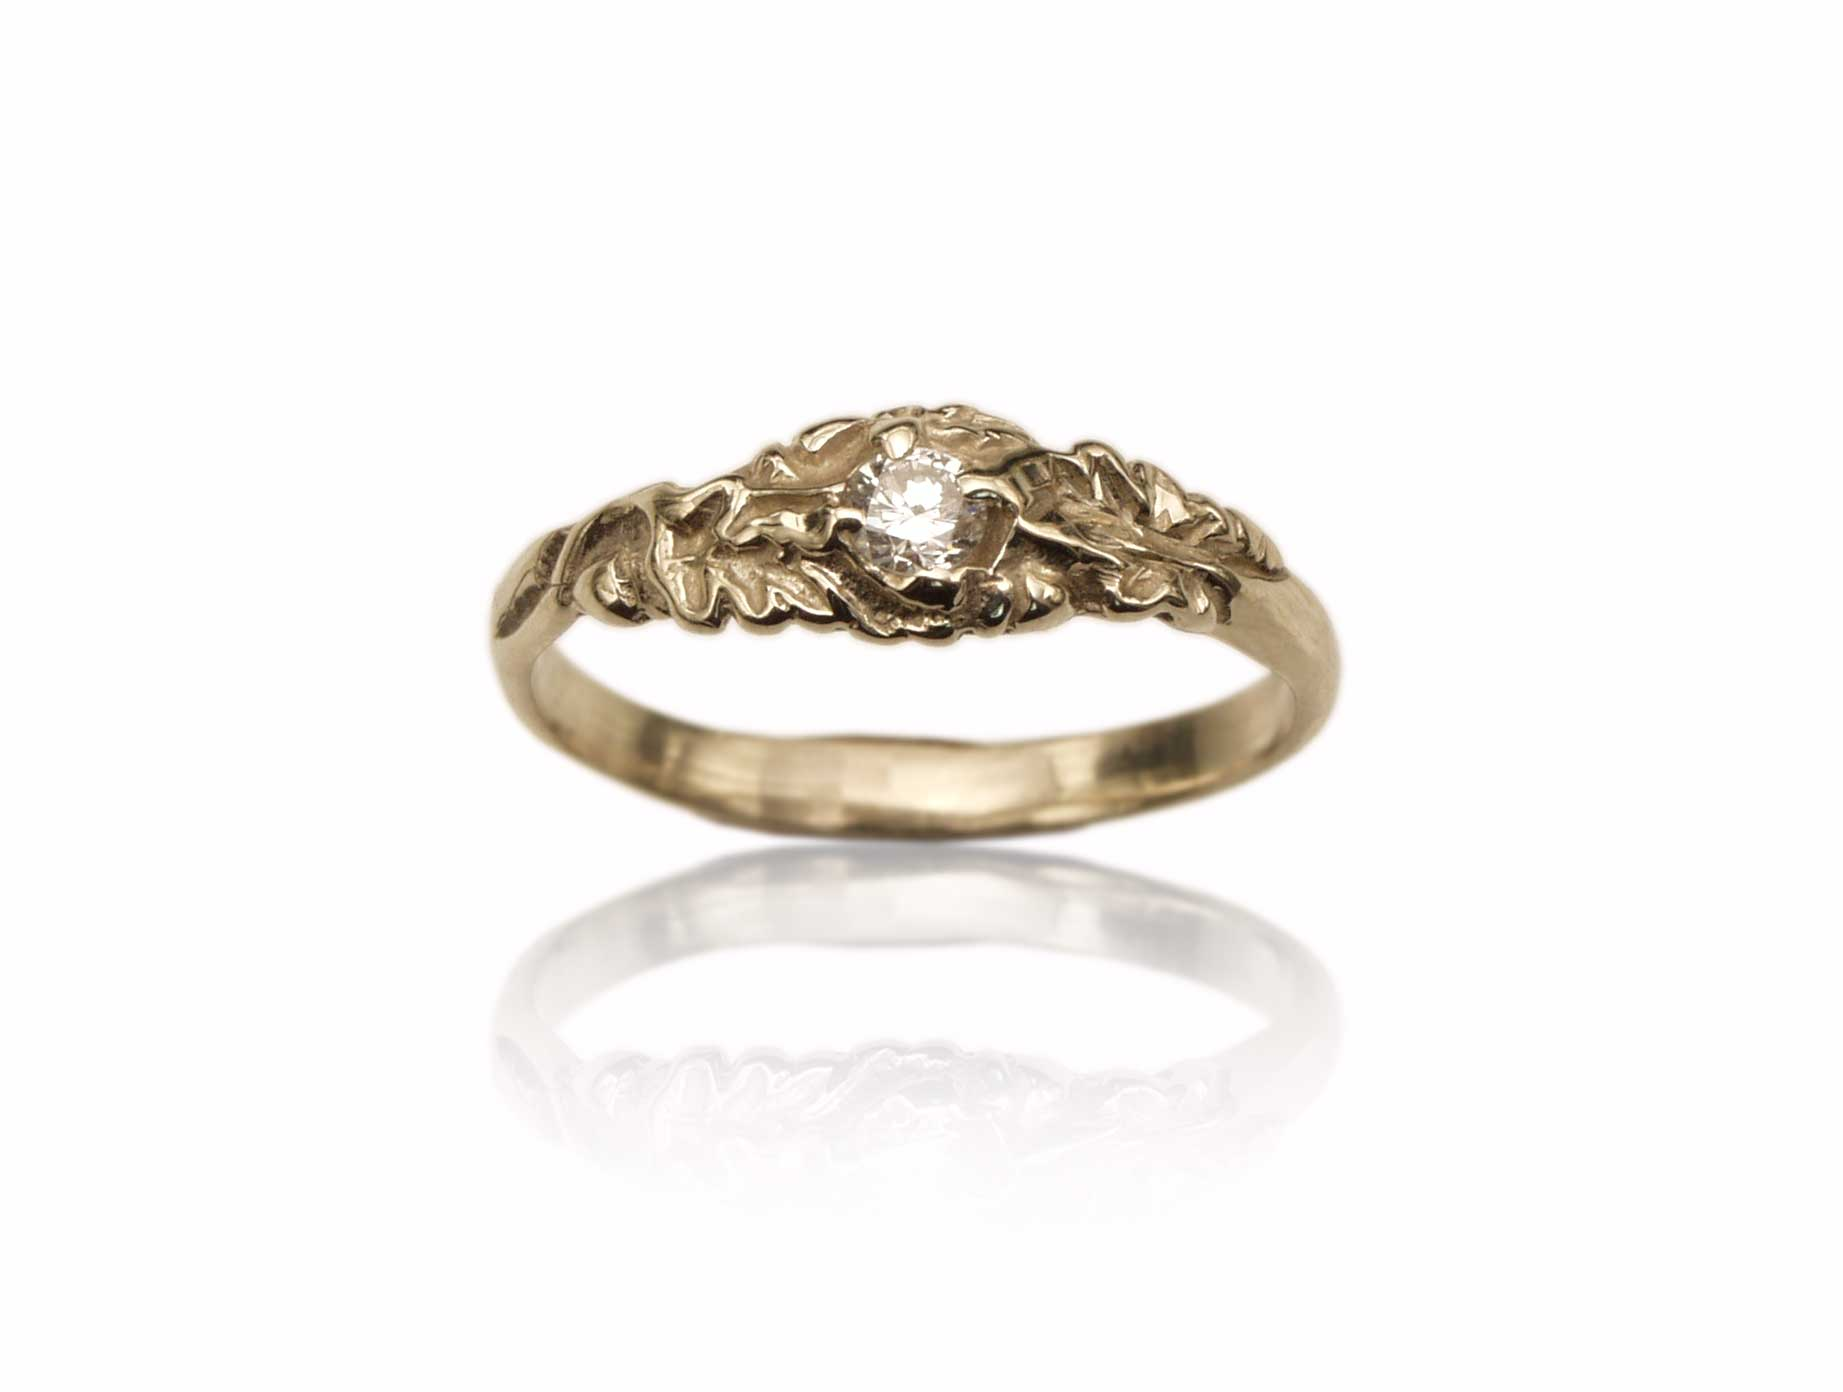 total design cut the prong price gold leaf band is wedding for olive rose measure size ring carat weight round contemporary img new each in of this diamonds set rings diameter that diamond a approx